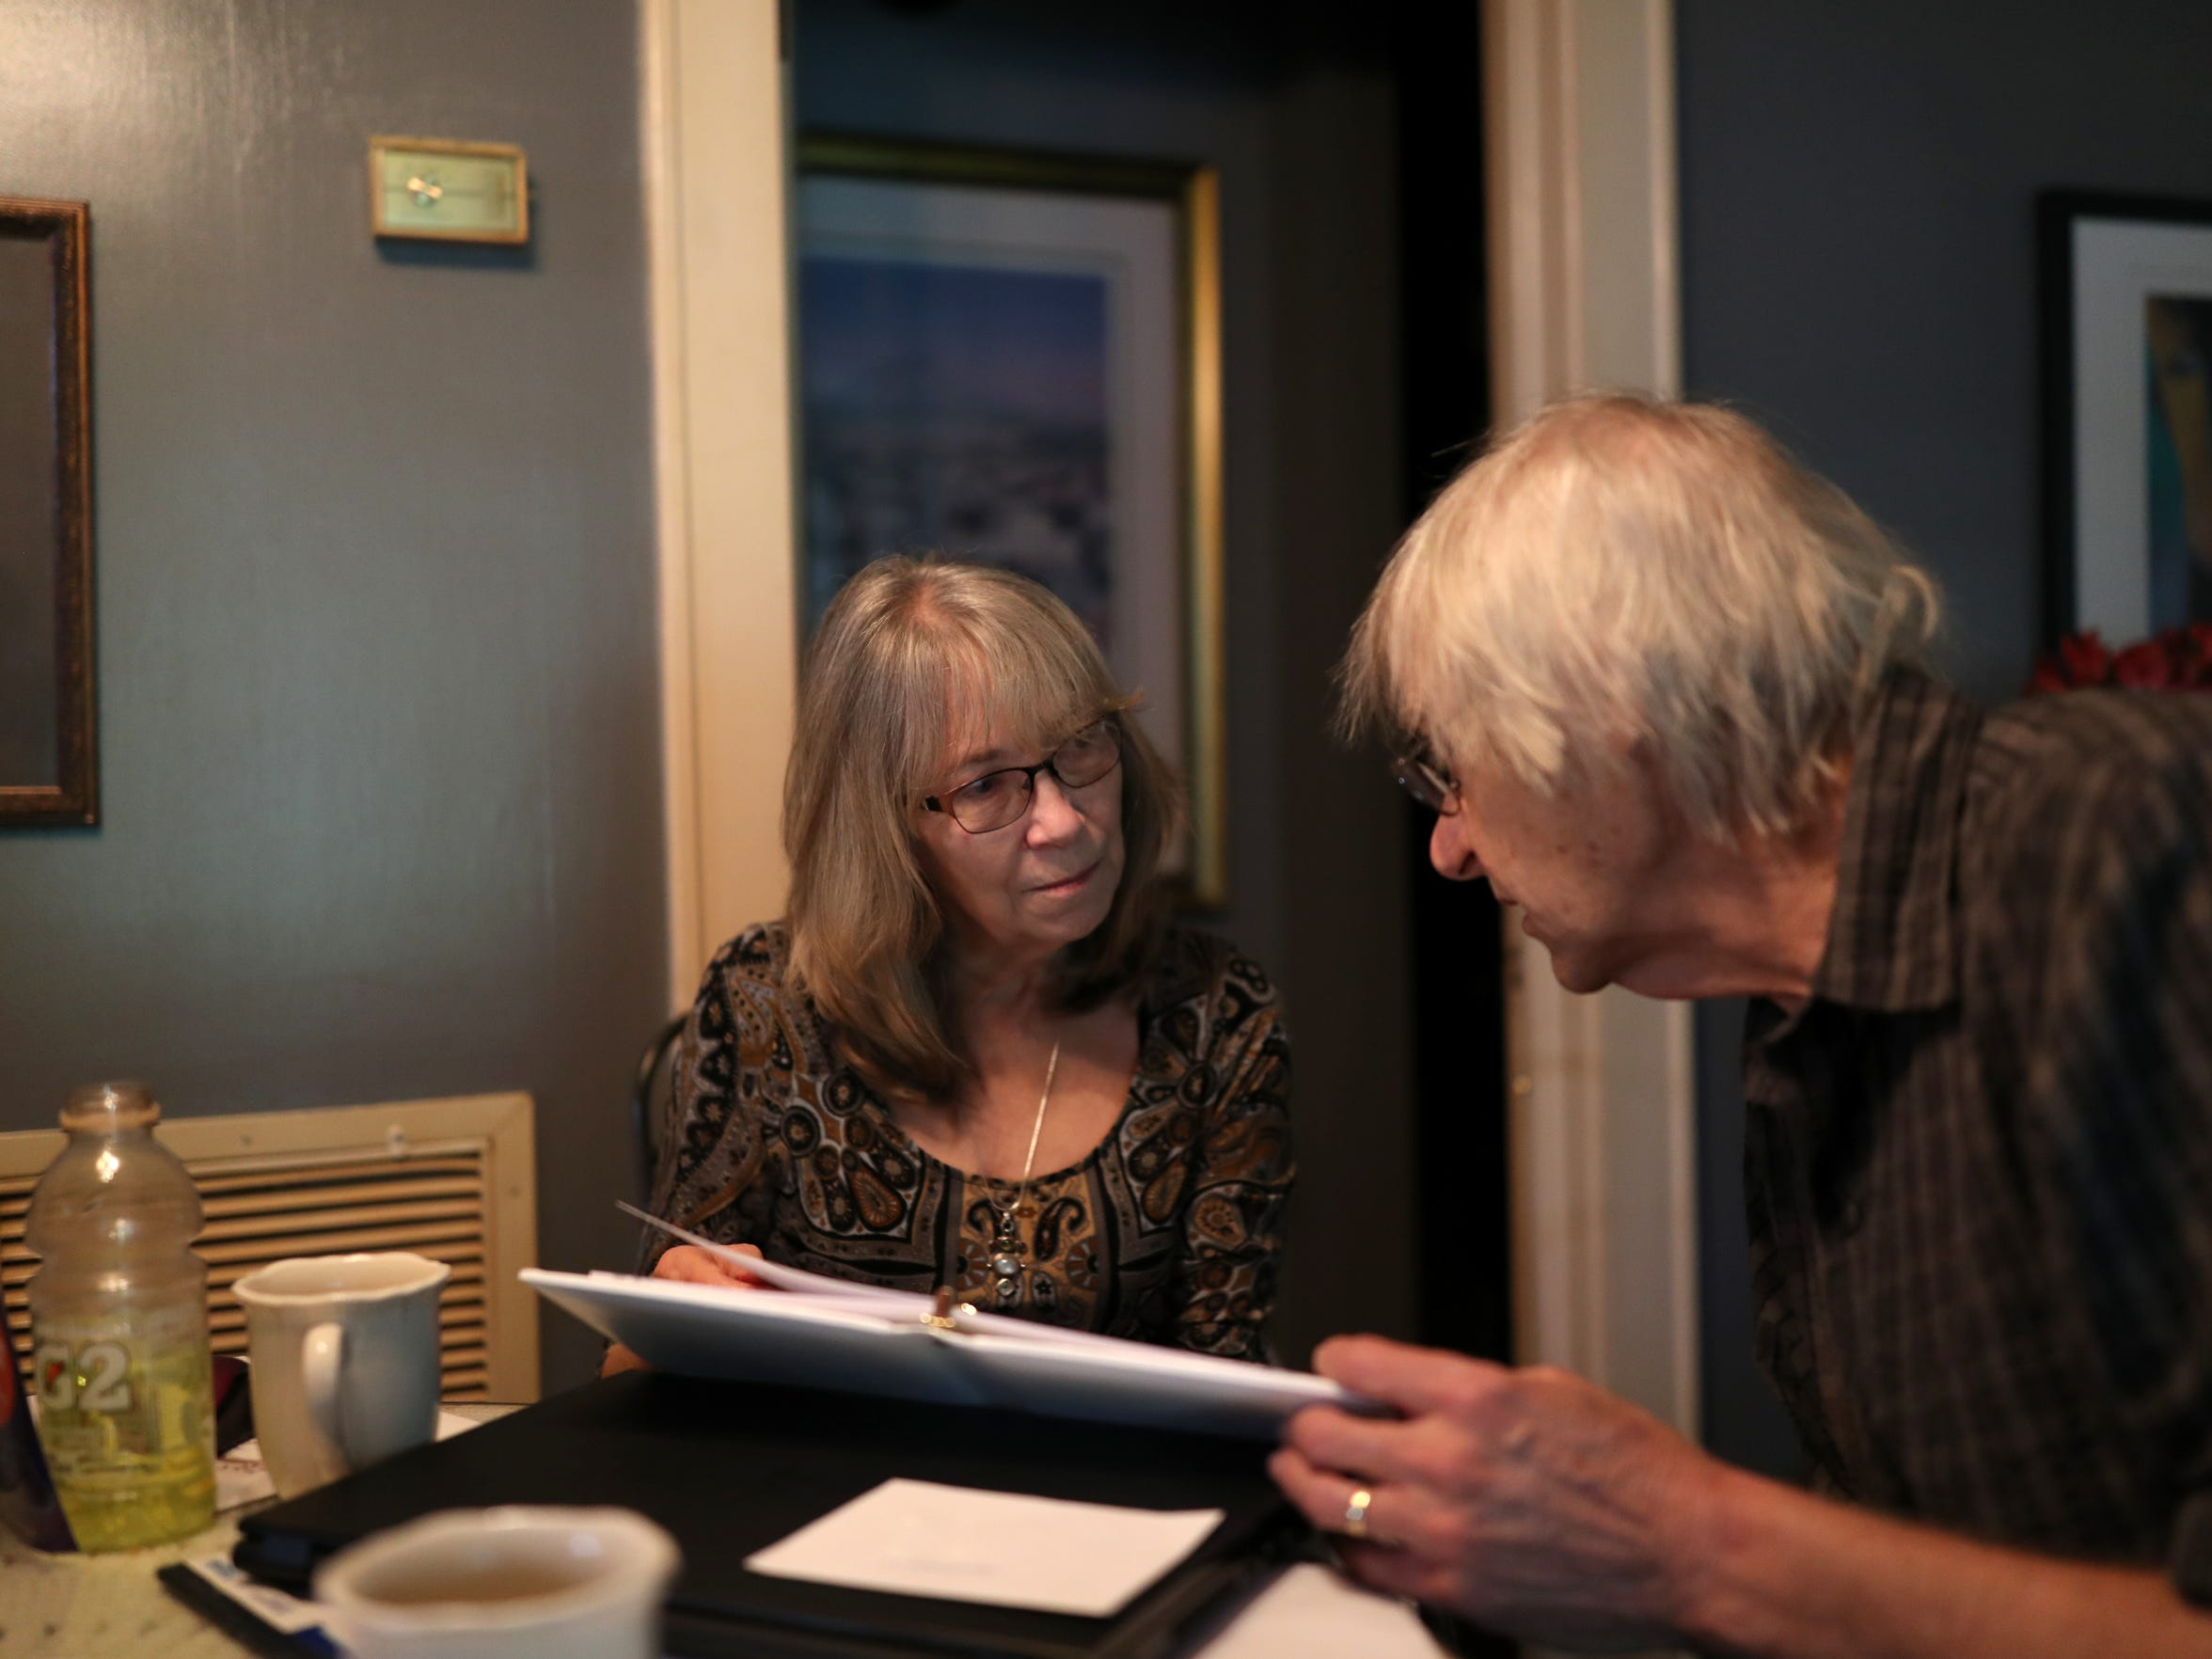 Steven Hjelm and Beth Frederick, parents of Jennifer Casey Norred, who was found in her cell by correctional staff at the Leon County jail after she killed herself.